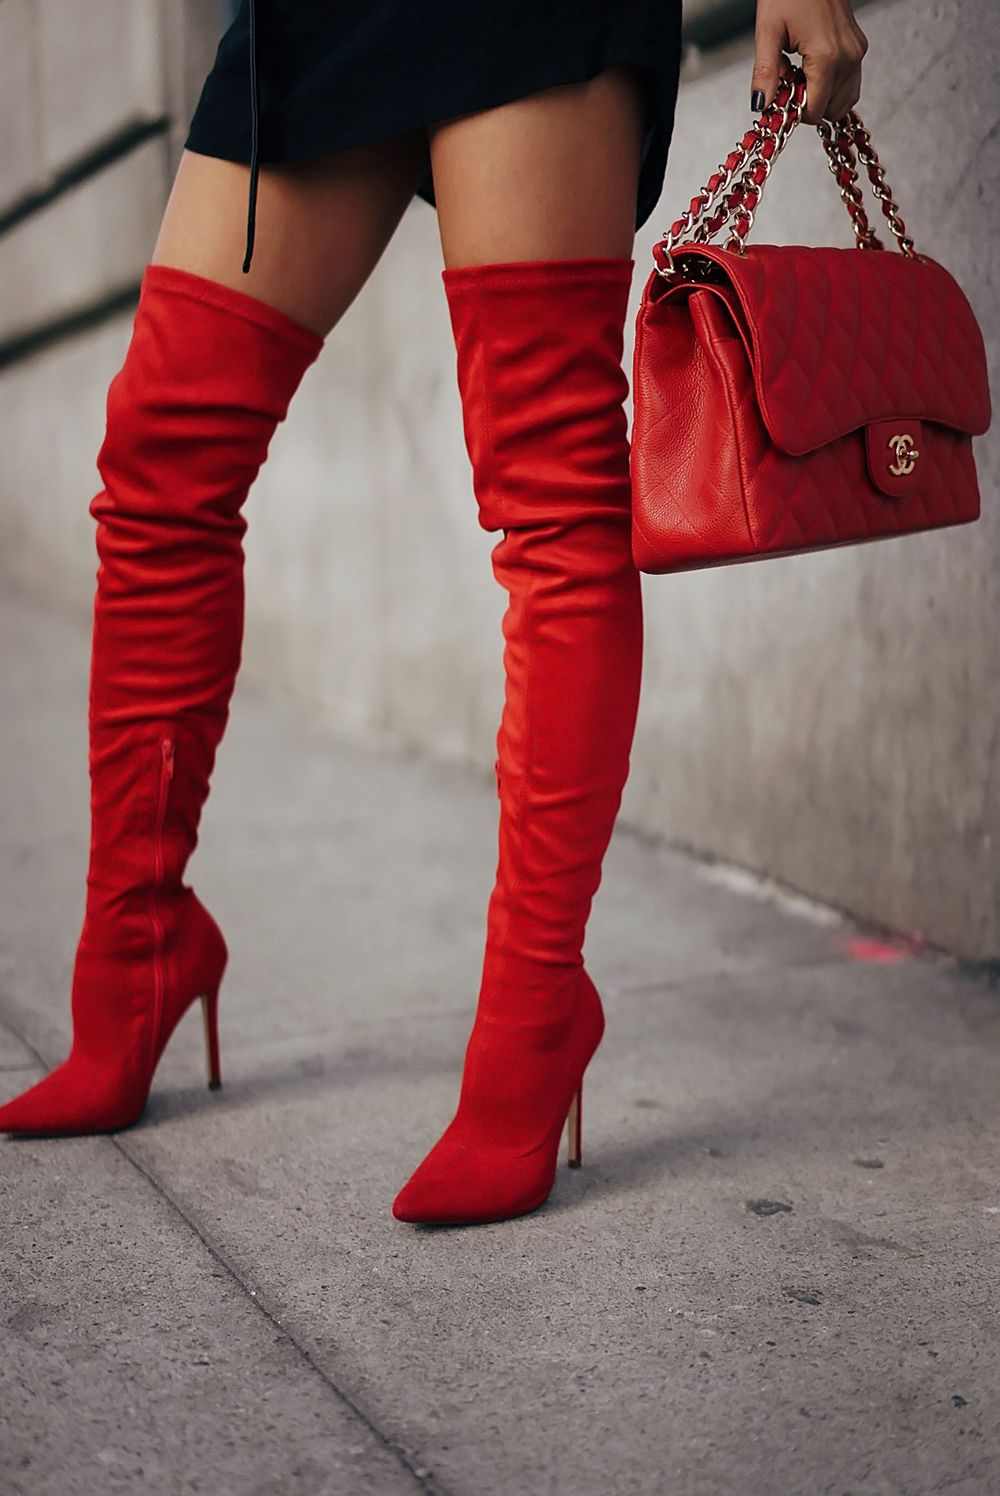 cfb456ddf84 HOW TO WEAR RED THIGH HIGH BOOTS THIS FALL #redboots #chanelbag ...